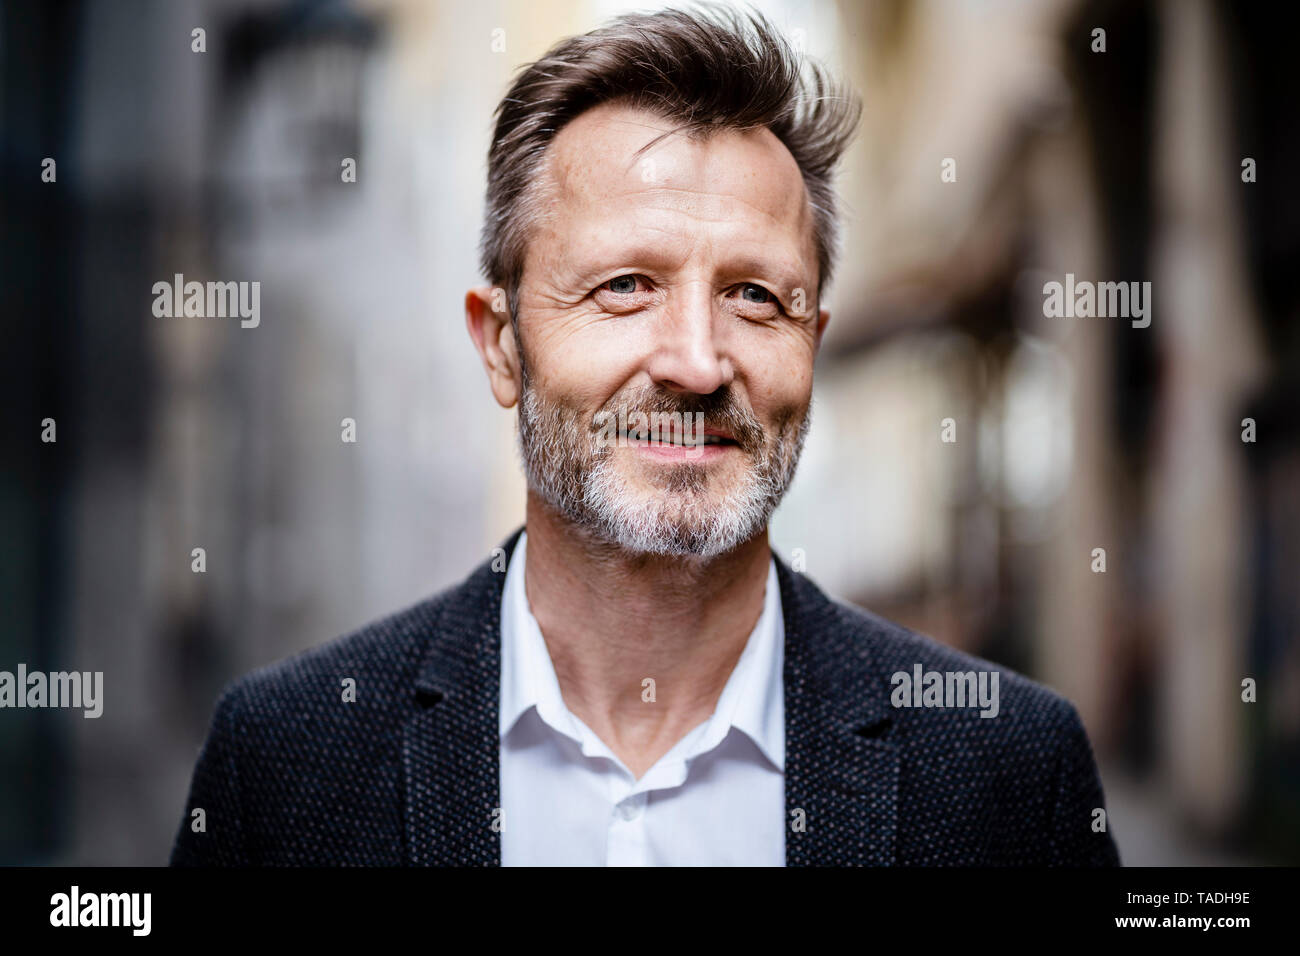 Portrait of smiling mature businessman with greying beard - Stock Image